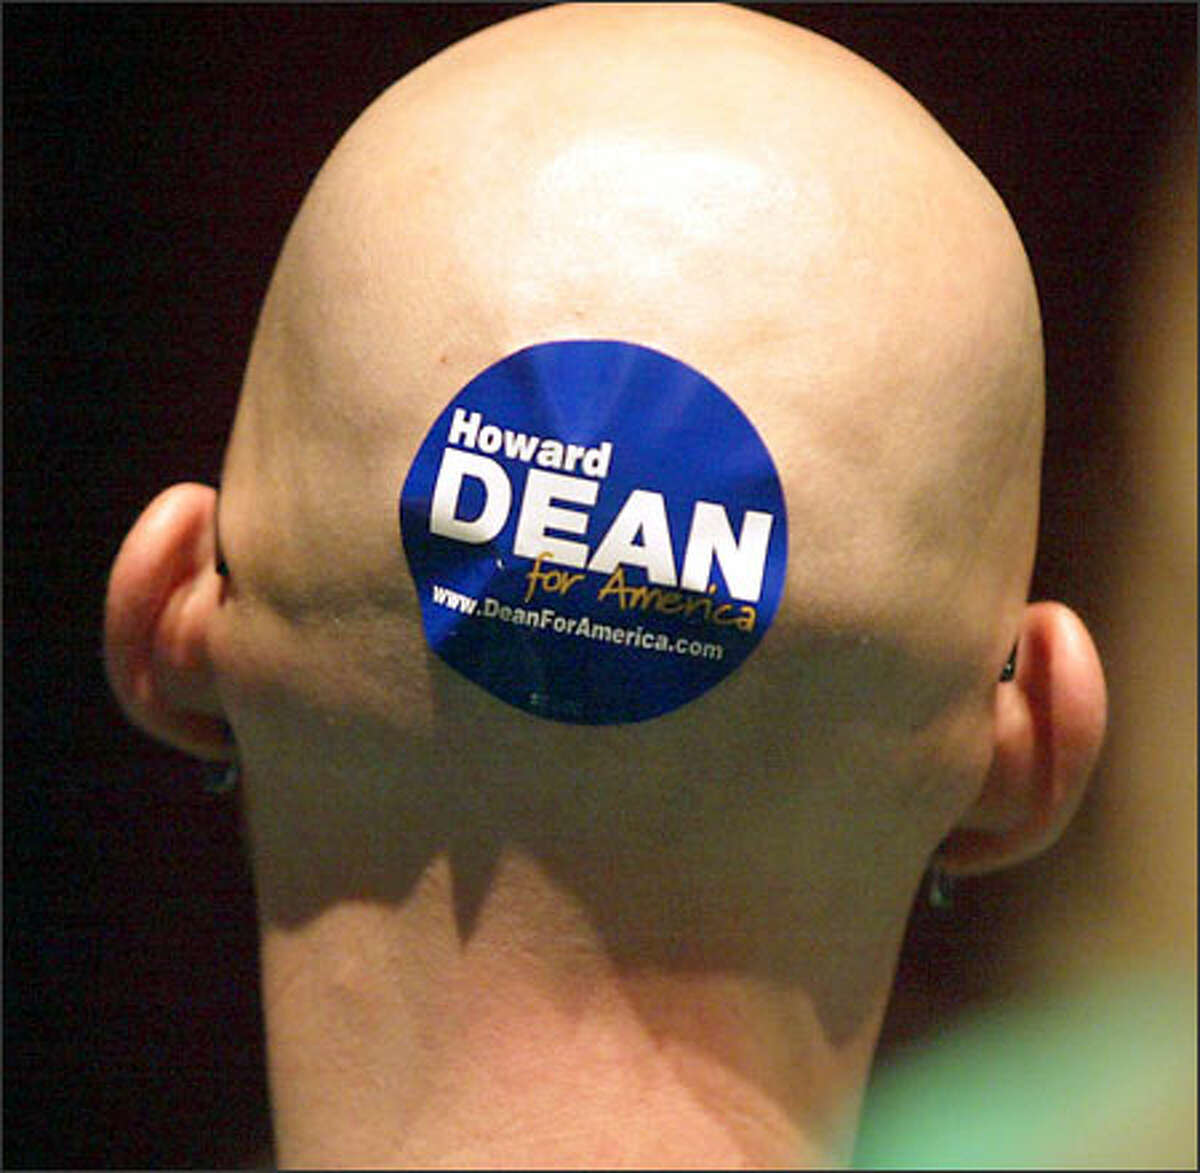 Tim Gates of Olympia sports a Dean sticker on the back of his head. Gates later shook hands with Dean after Dean spoke in Tacoma.